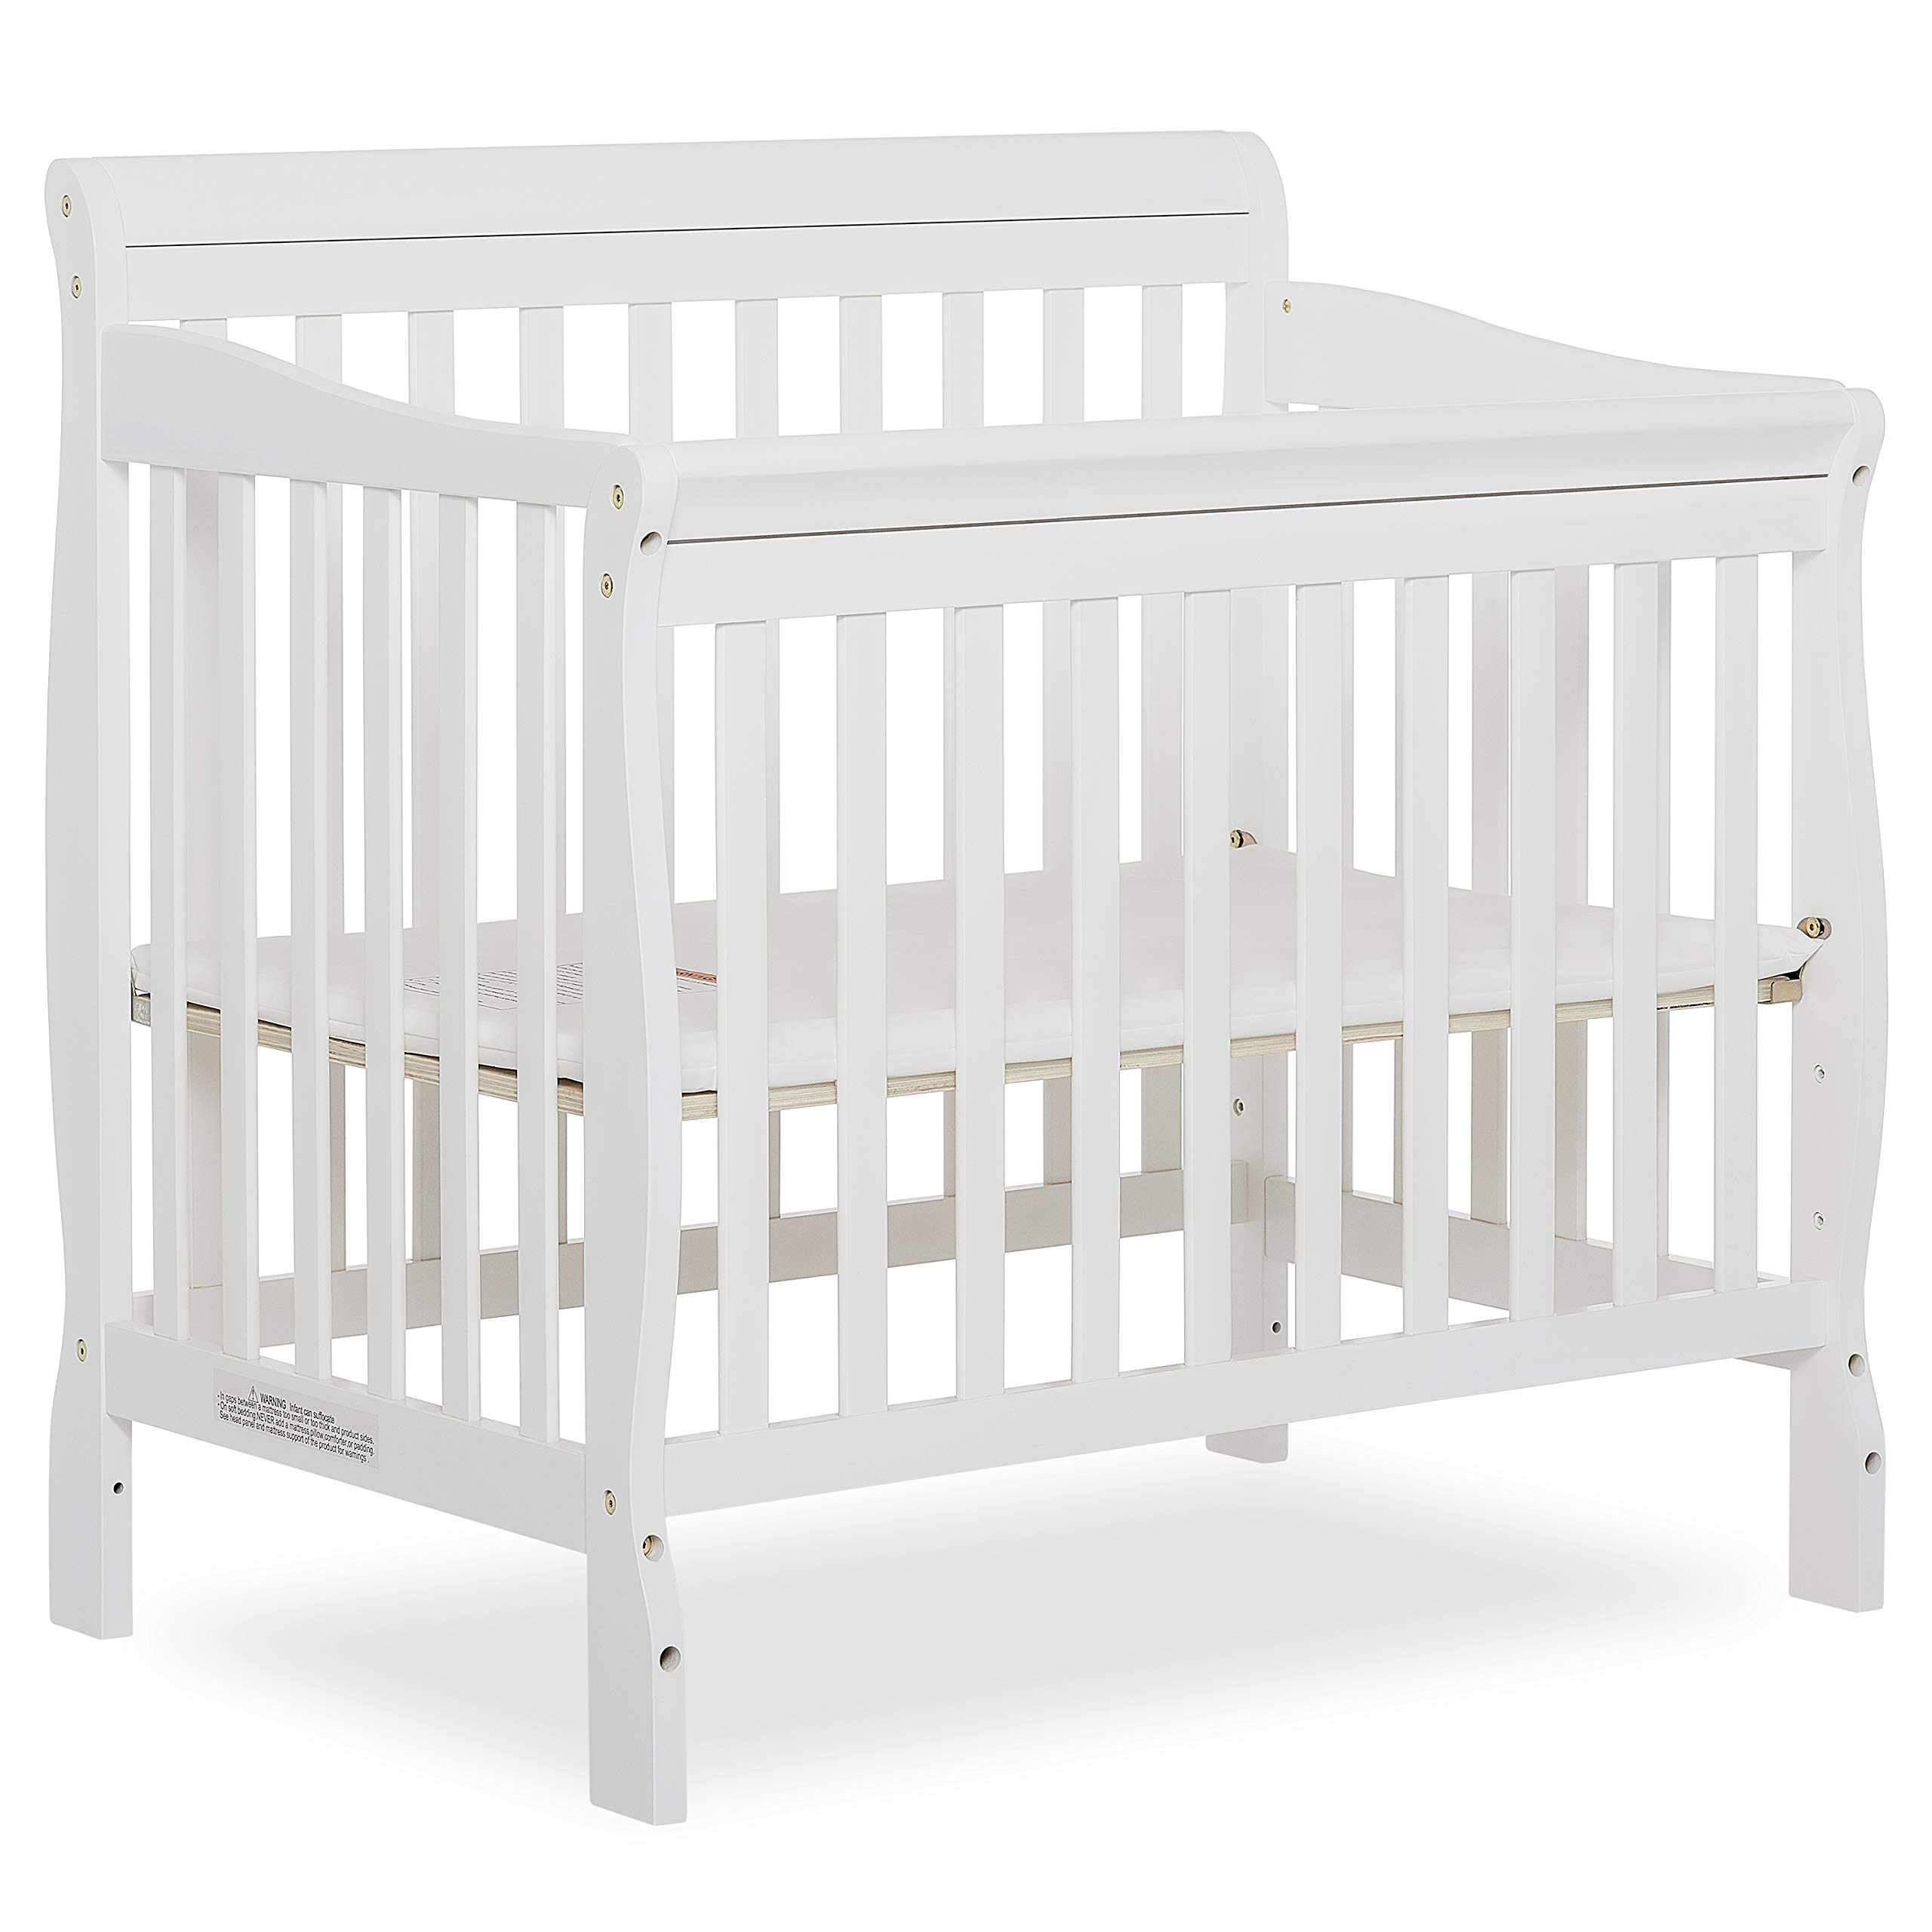 Dream On Me 4 in 1 Aden Convertible Mini Crib by Dream On Me